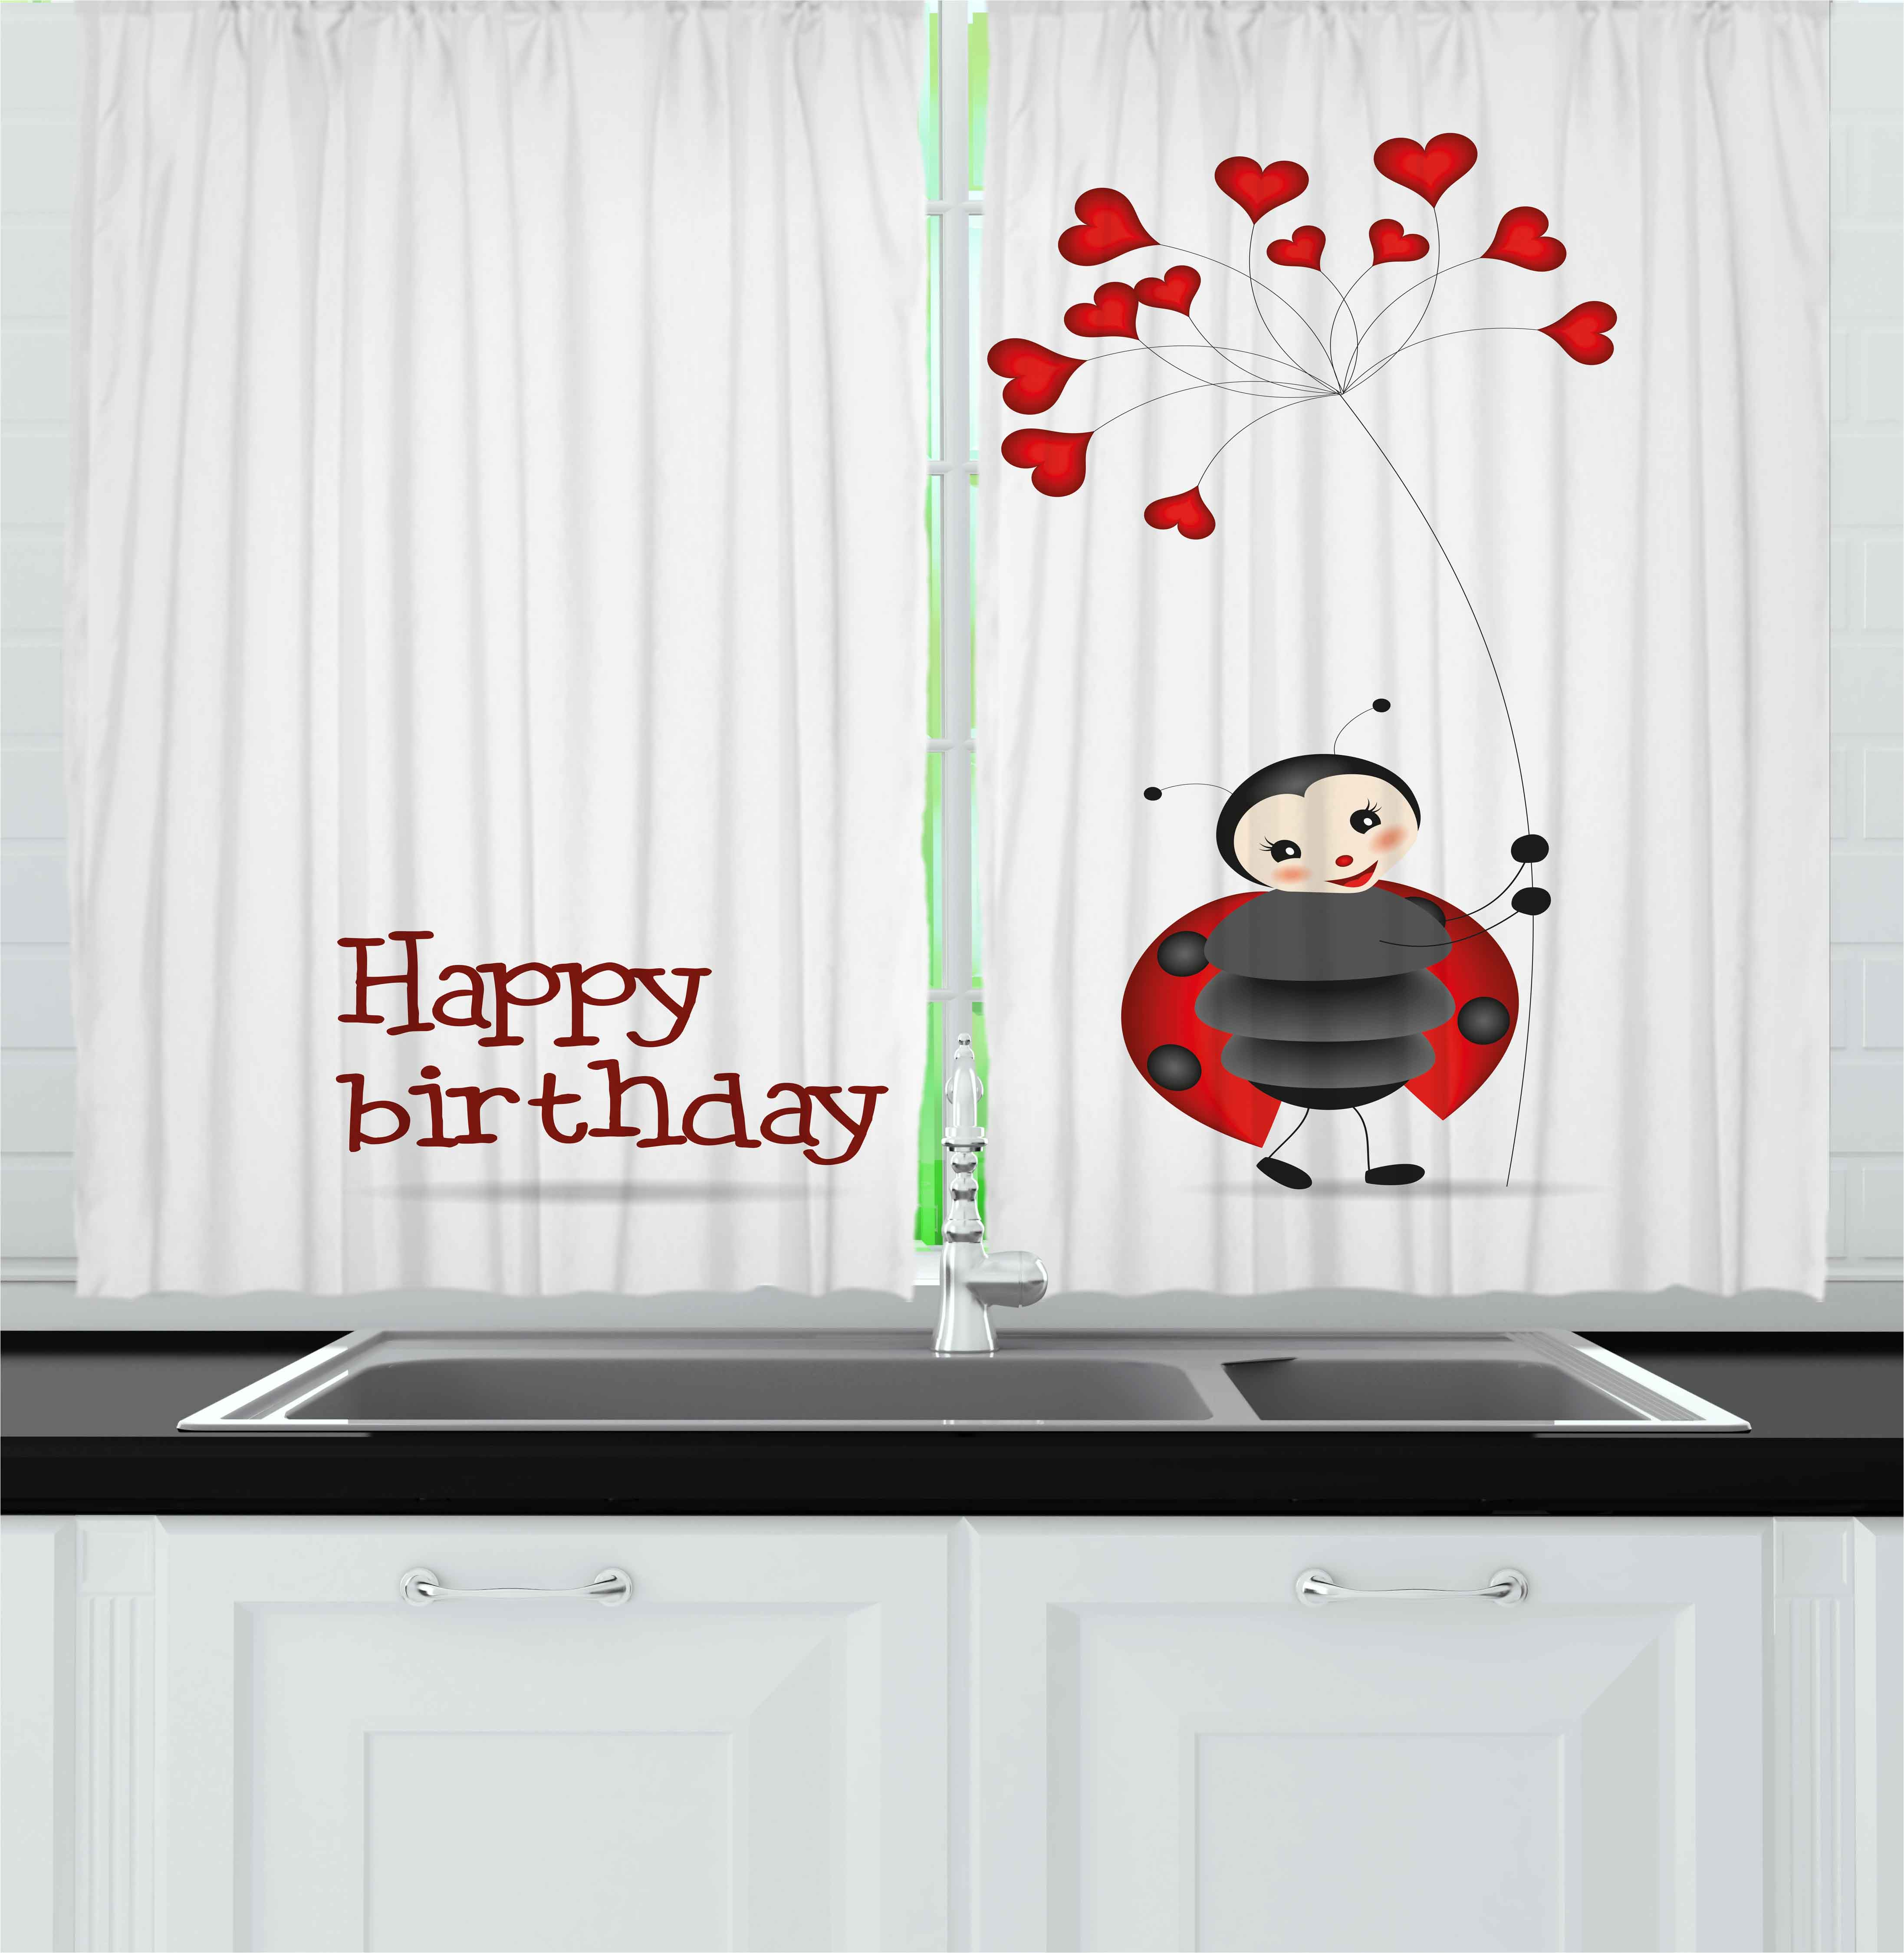 Kids Birthday Curtains 2 Panels Set, Ladybug Wings Flower Inspired Heart Shaped Celebration Balloons, Window Drapes for Living Room Bedroom, 55W X 39L Inches, Red Black and White, by Ambesonne